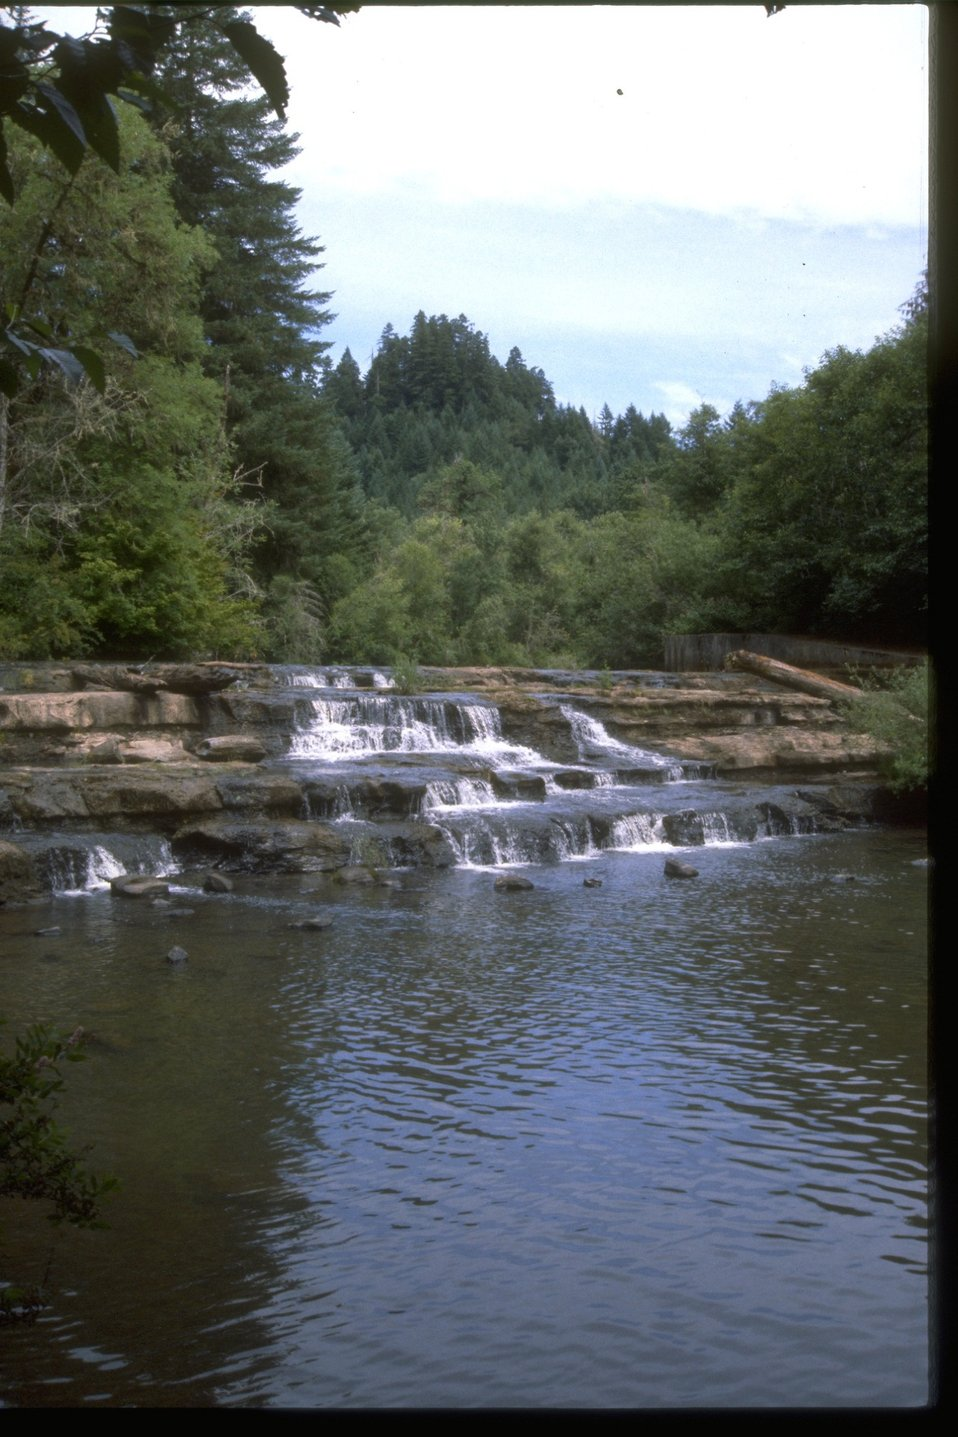 View of Siuslaw Falls